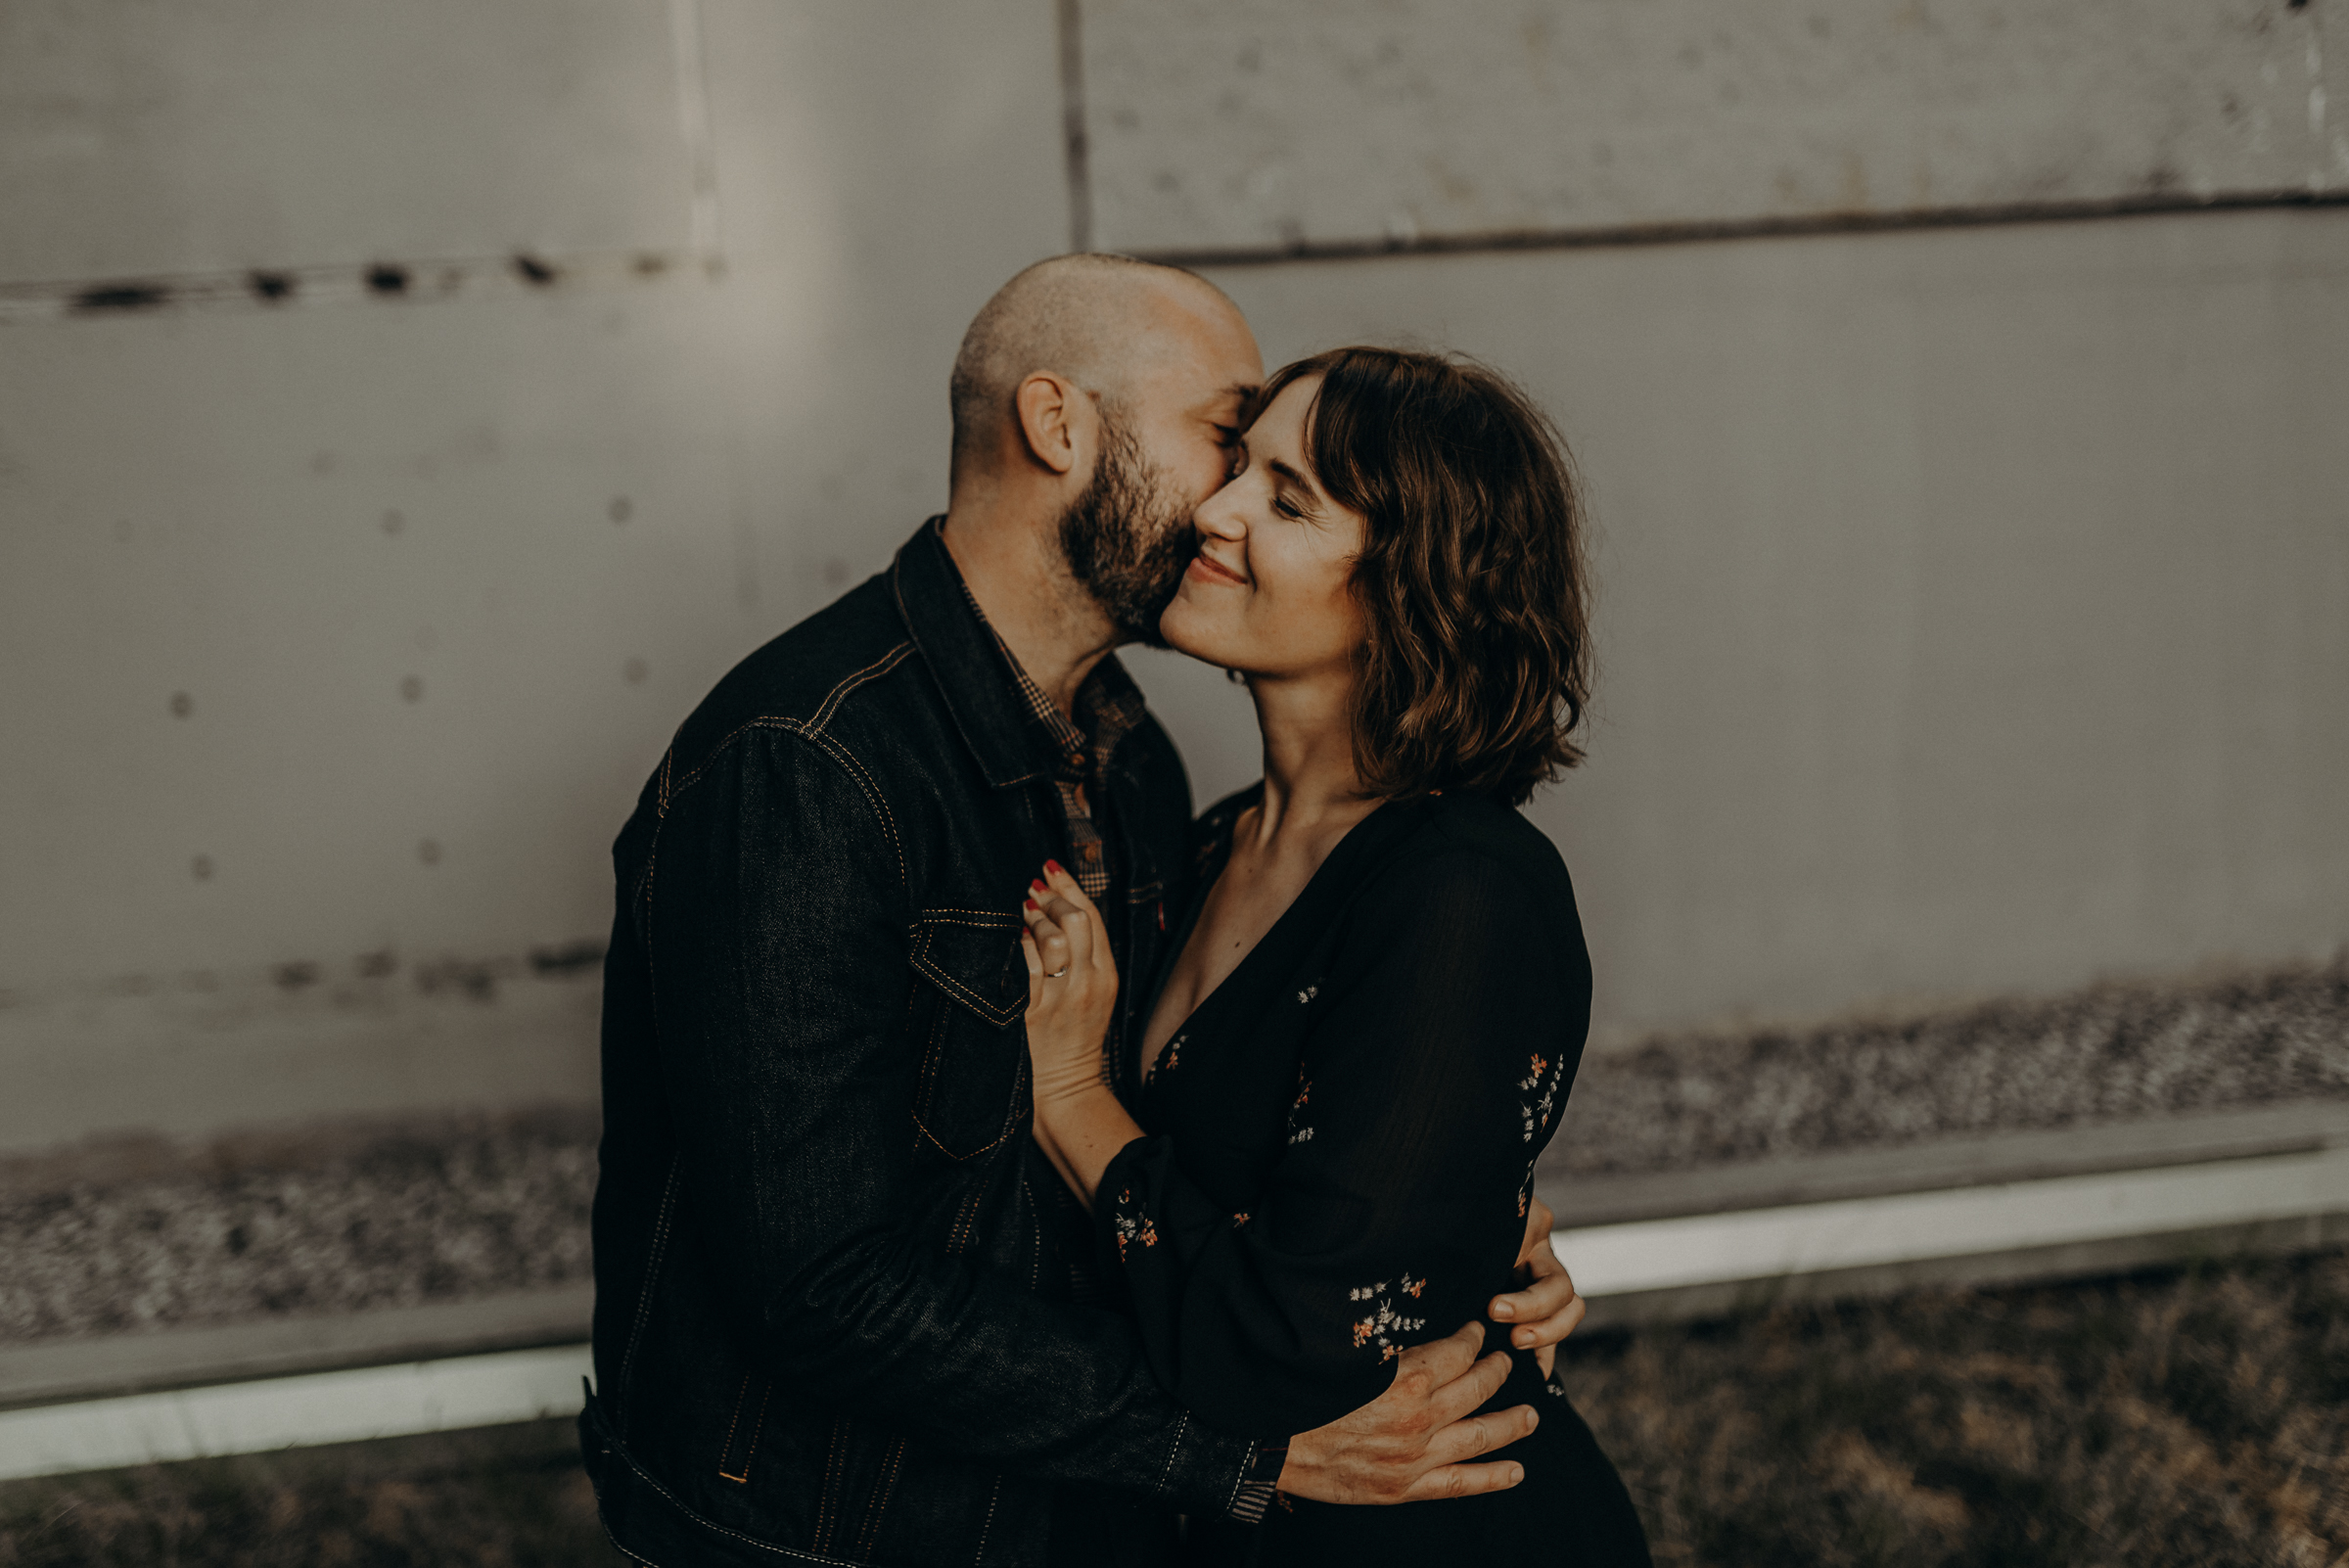 Isaiah + Taylor Photography - Downtown Los Angeles Arts District Engagement22.jpg